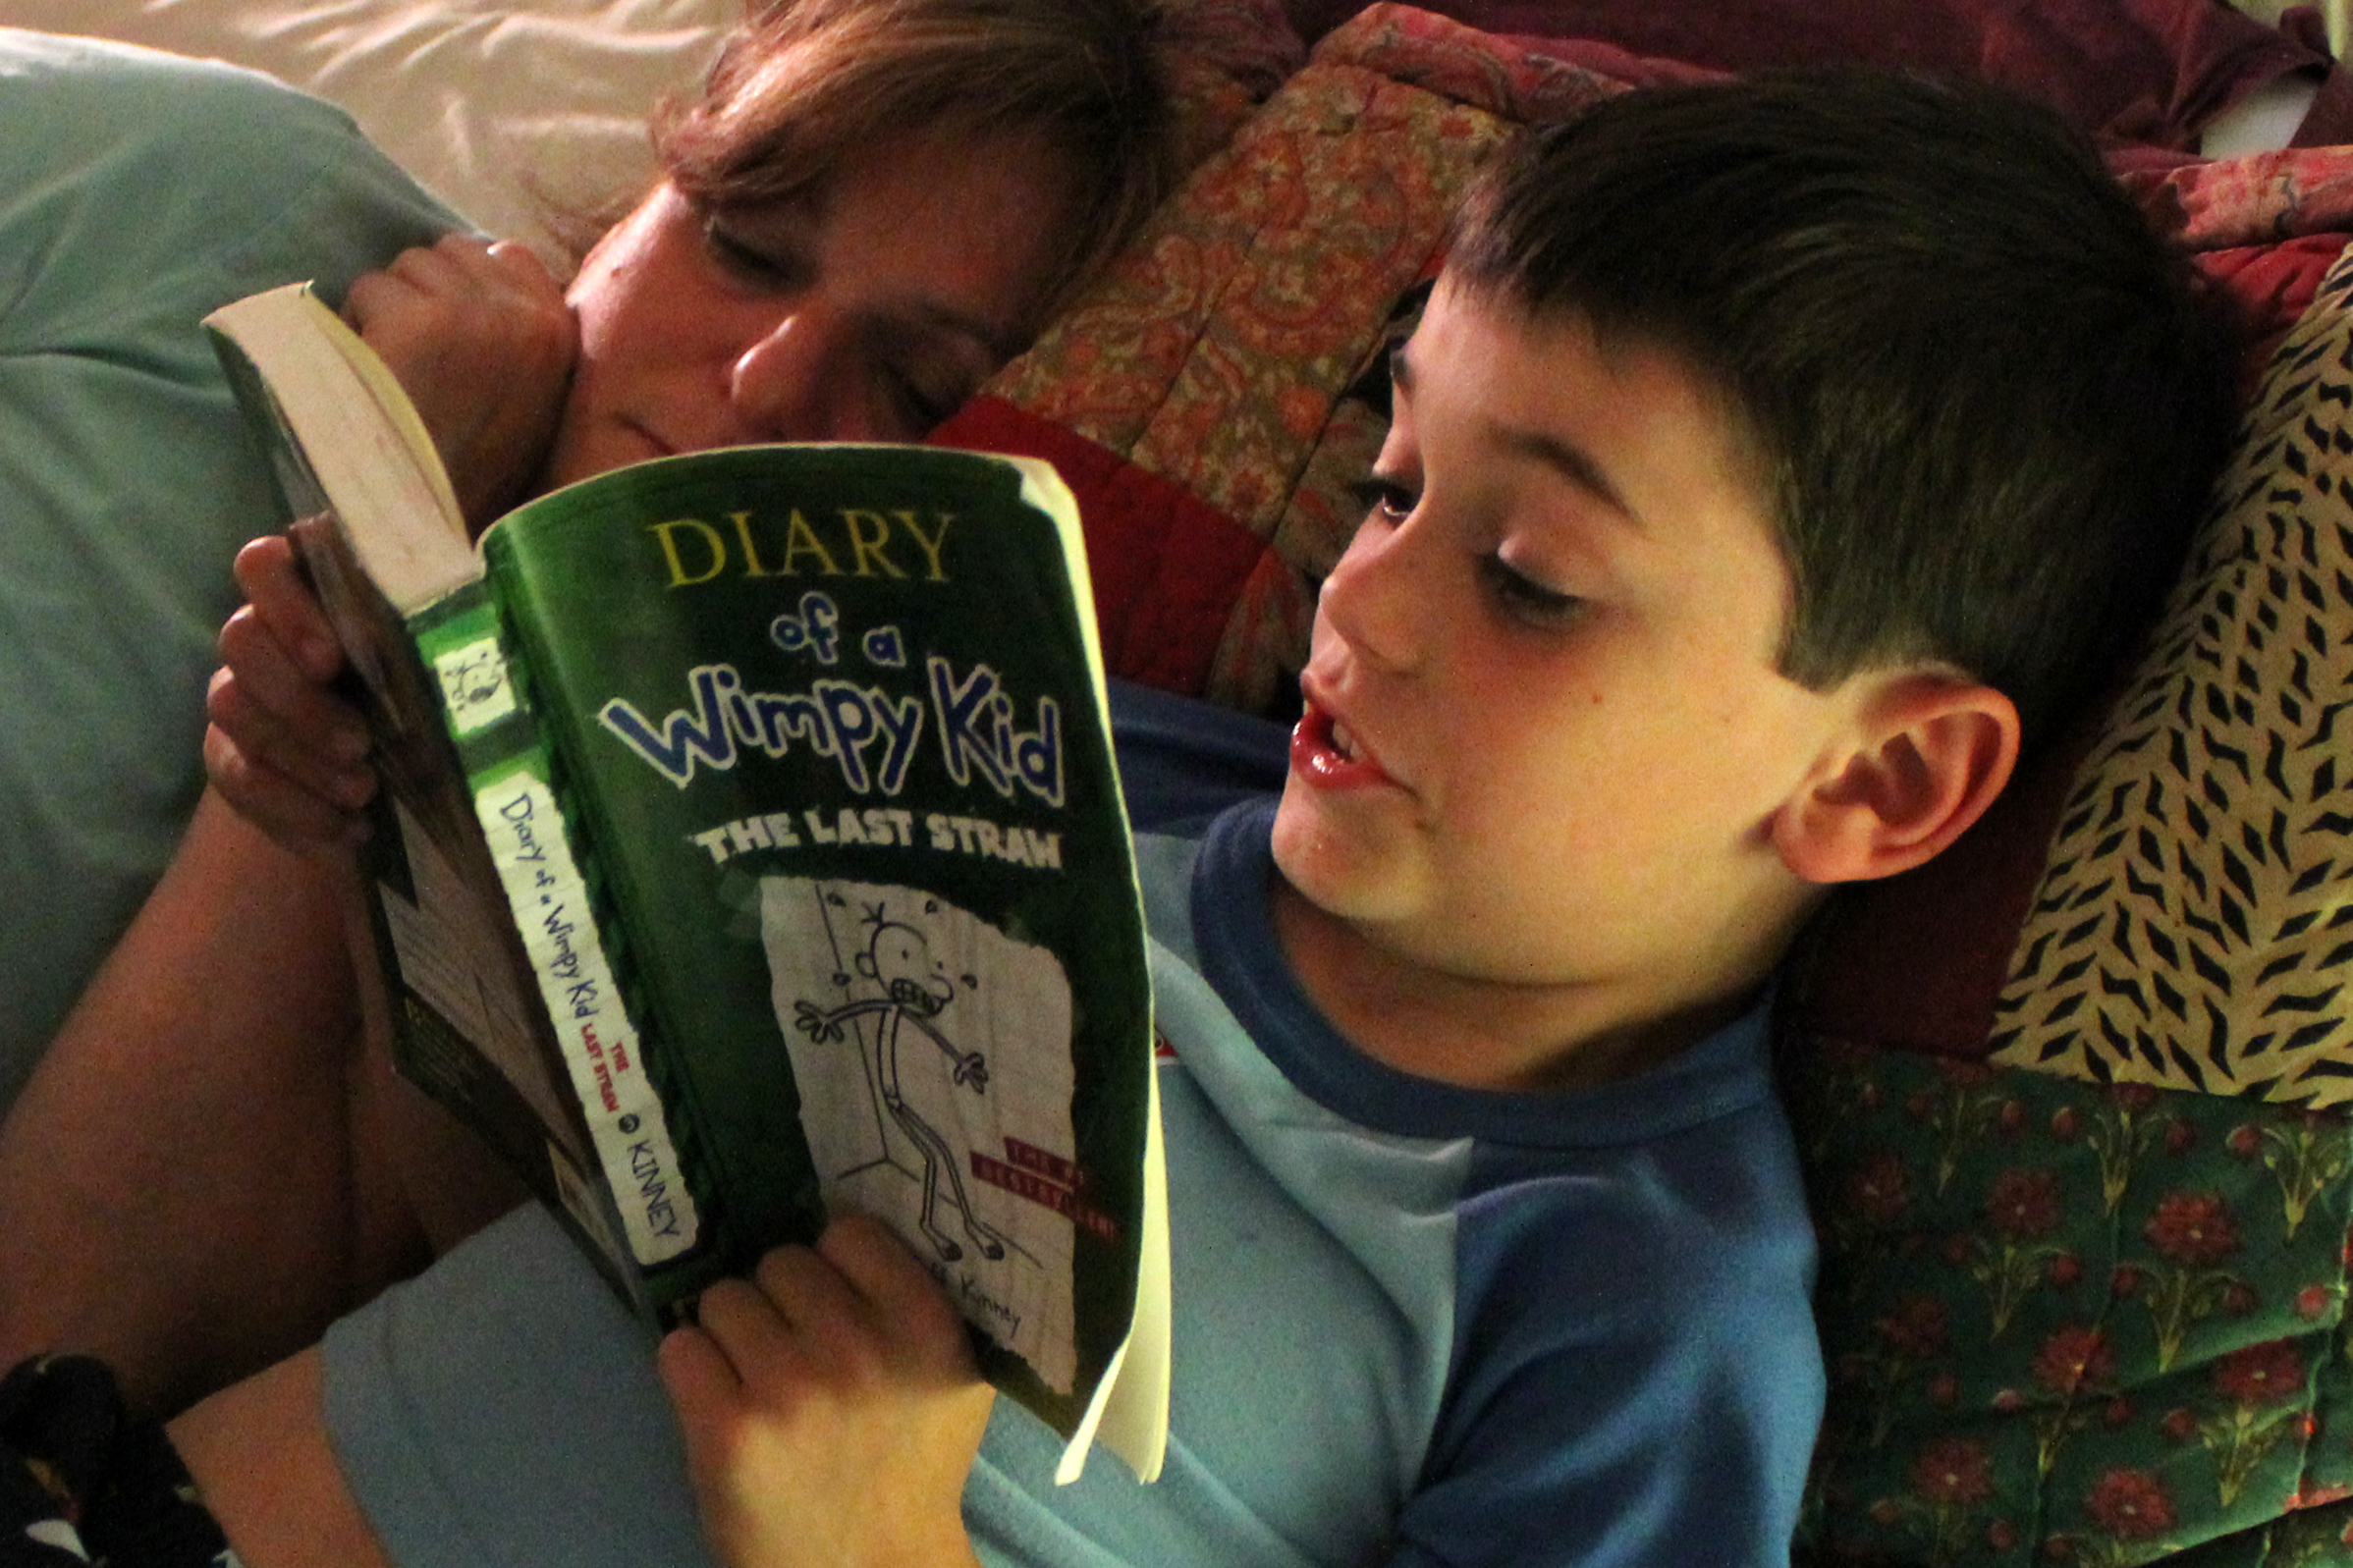 Let Your Kids Read To You By Woodleywonderworks on Flickr